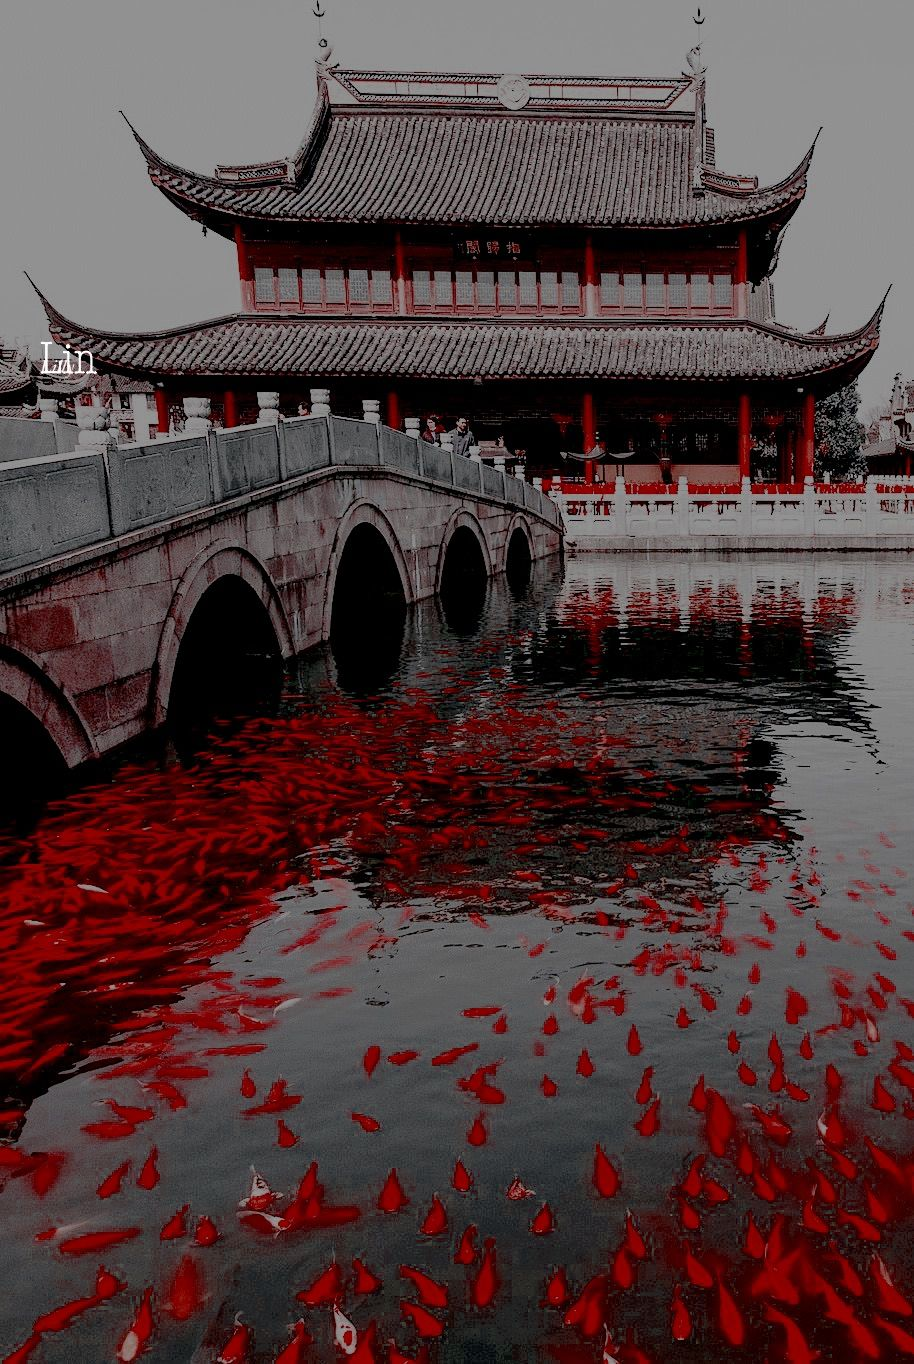 Aesthetic simple red theme 2/2 on We Heart It